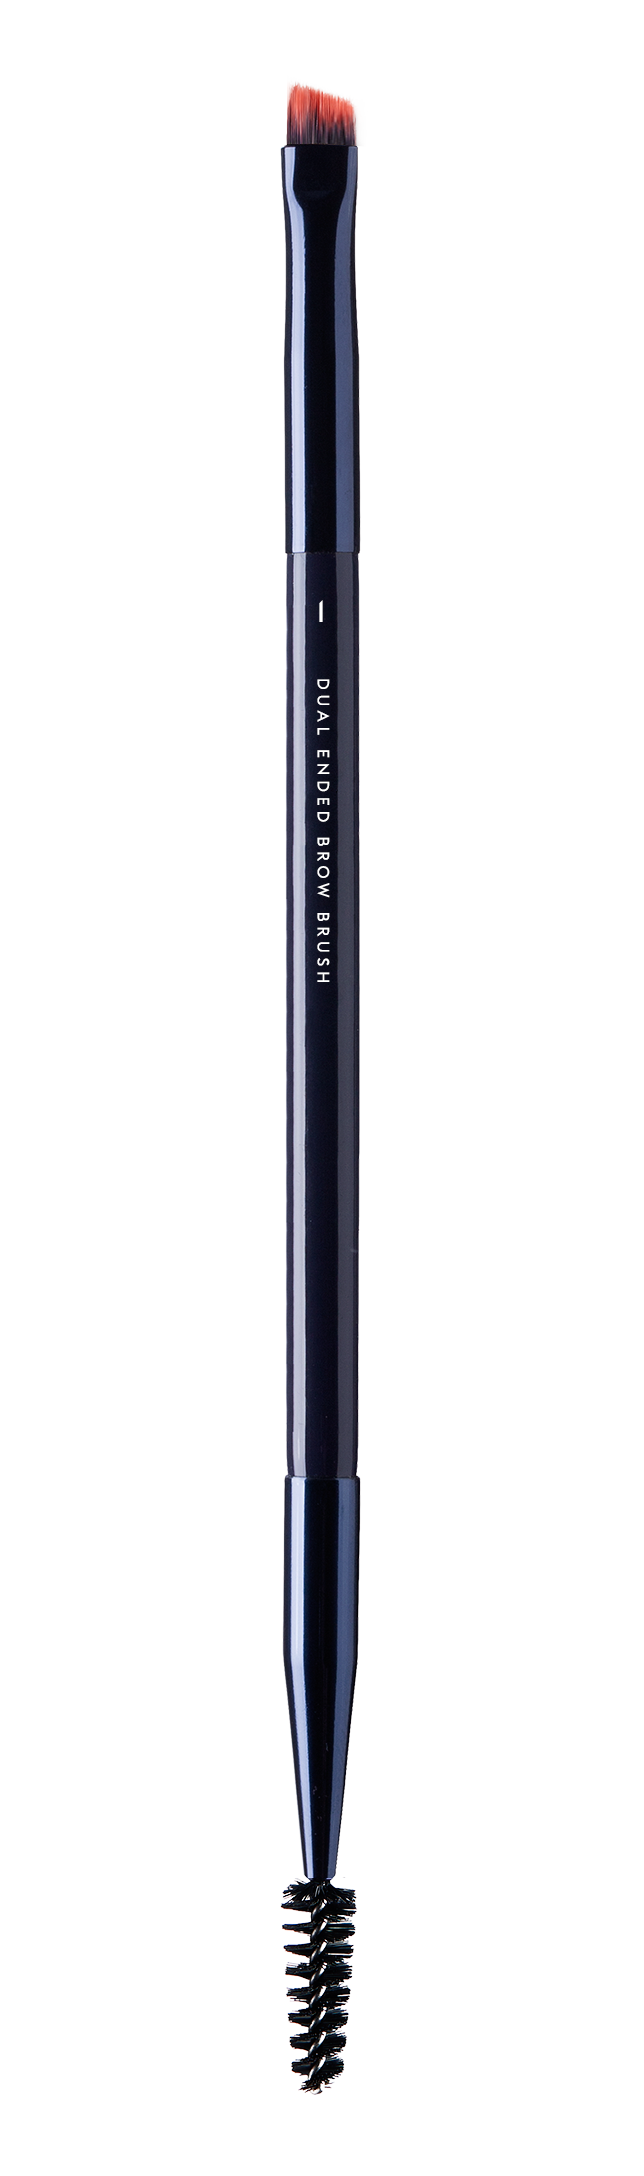 DUAL ENDED BROW BRUSH -